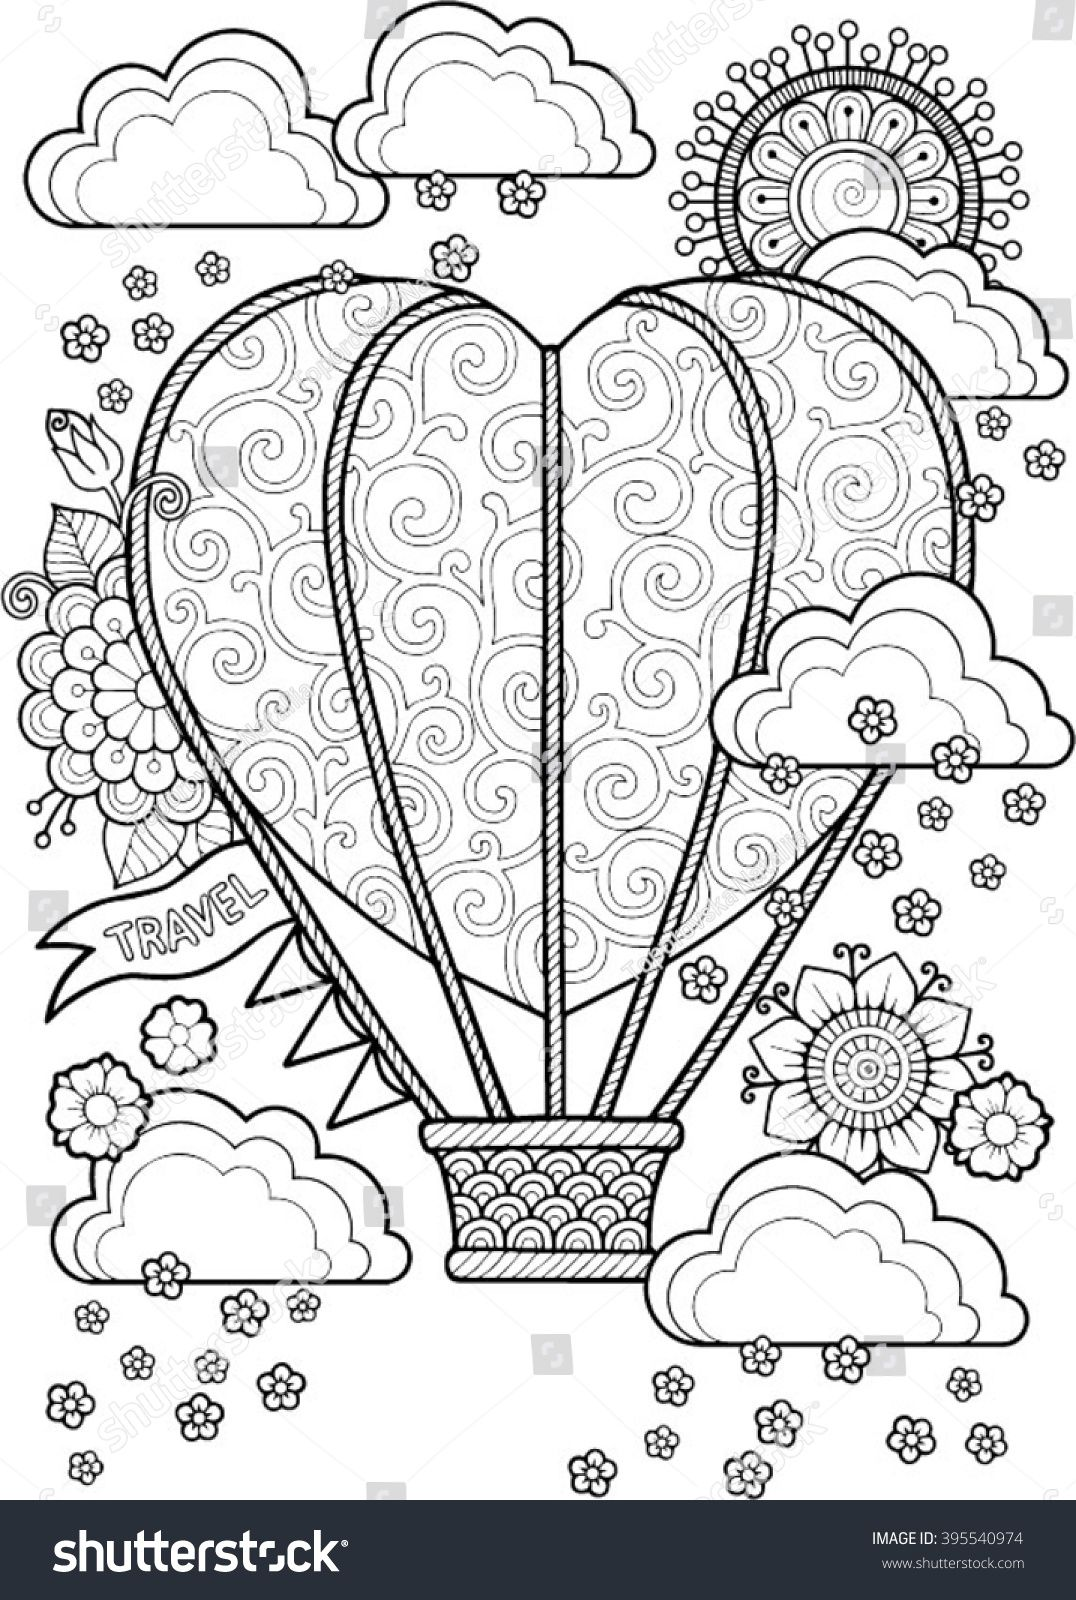 stock-vector-journey-in-a-balloon-valentines-day-coloring-book-for ...